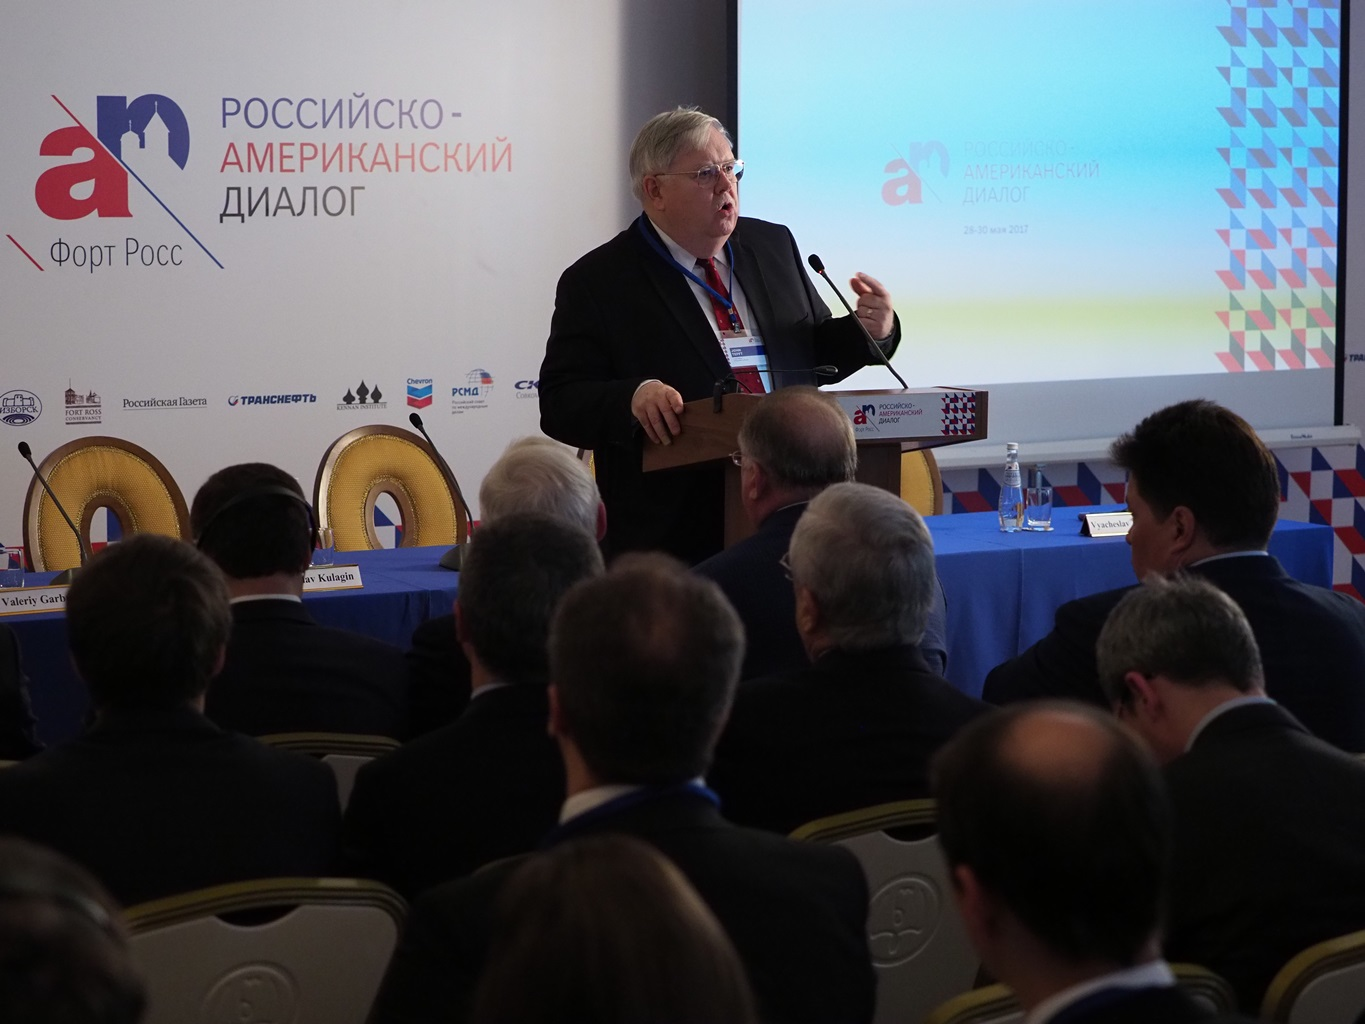 U.S. Ambassador to Russia John Tefft opening the conference.